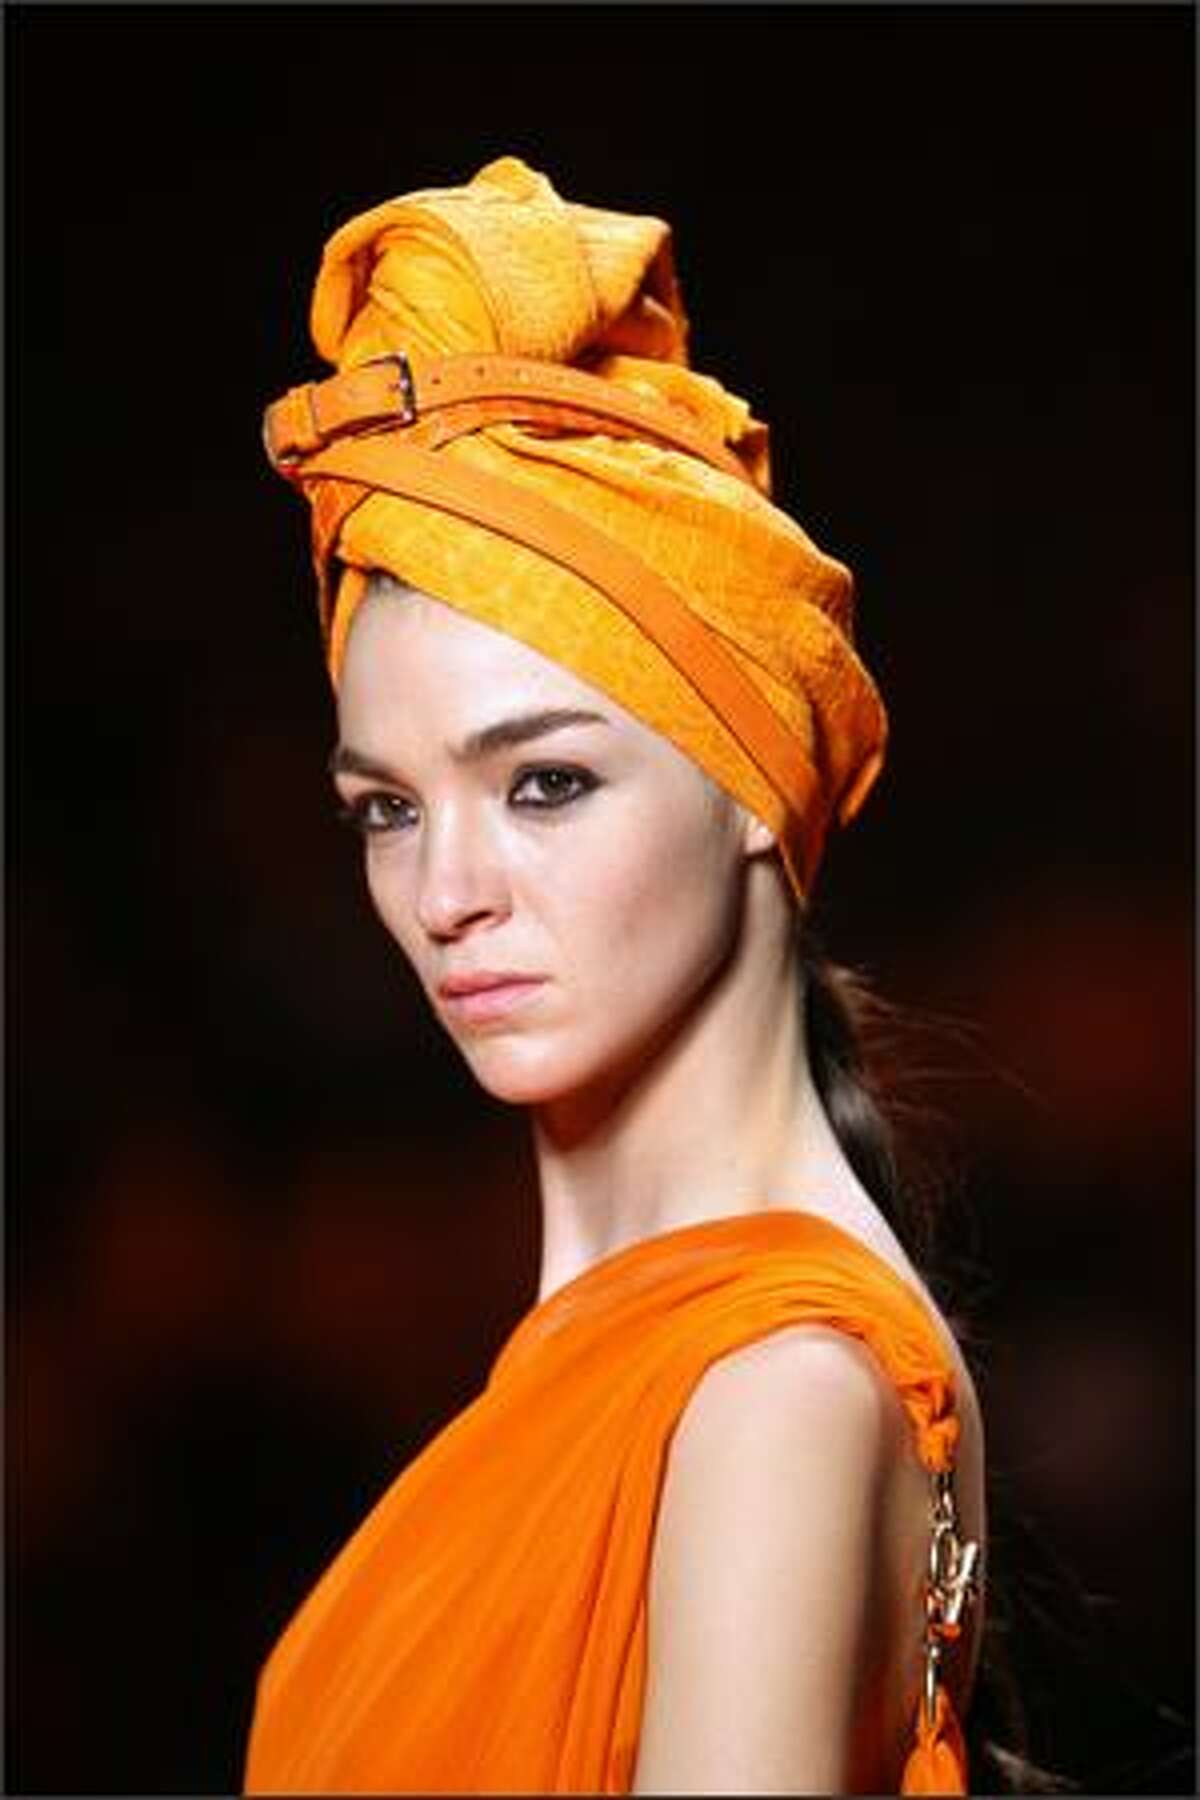 Italian model Maria Carla Boscono presents a creation by French designer Jean Paul Gaultier for Hermes during Spring/Summer 2008 ready-to-wear collection show in Paris, 06 October 2007.